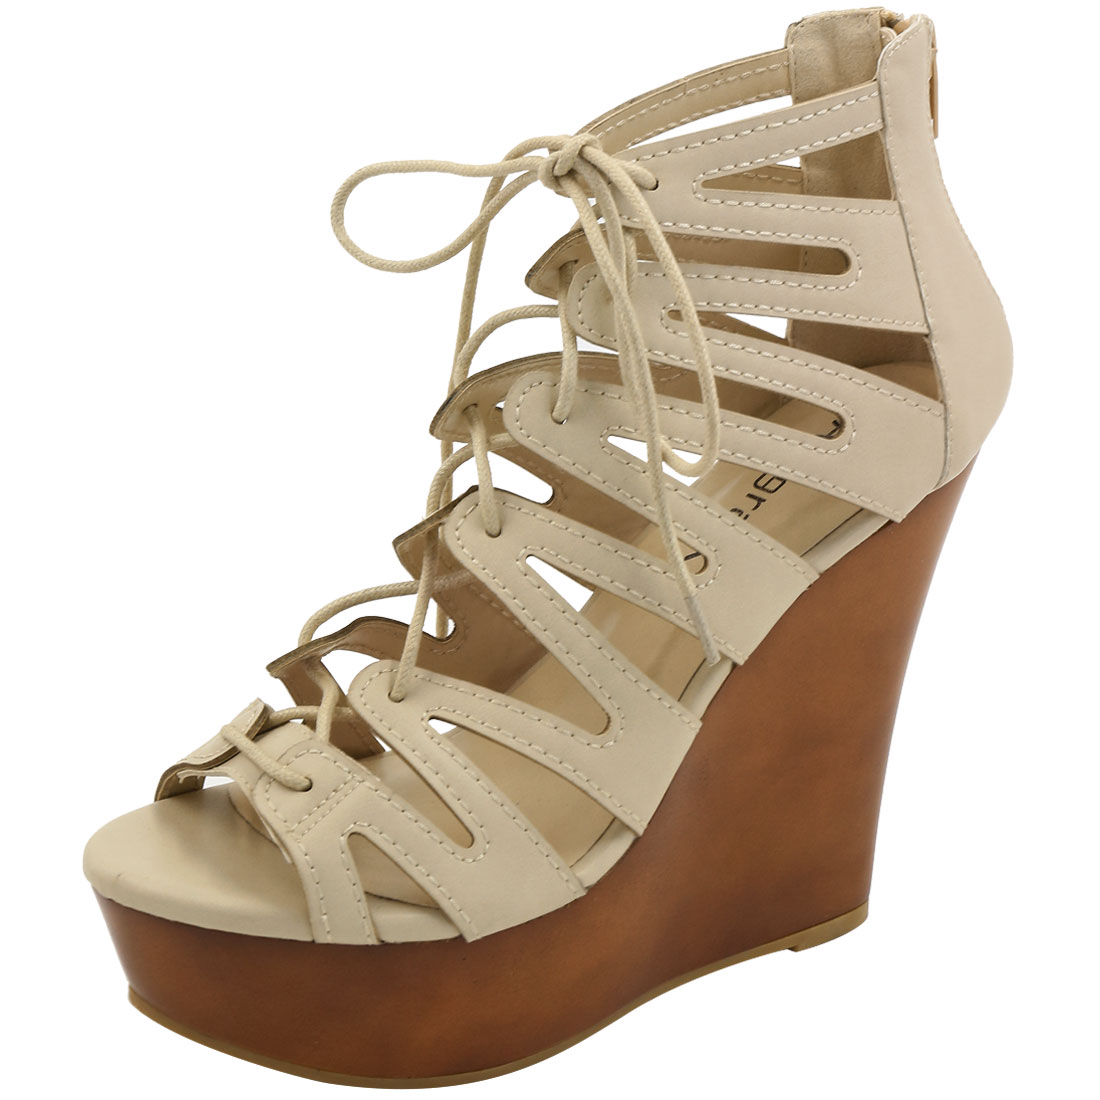 Woman Open Toe Lace-Up Cutout Platform Wedge Sandals Beige US 10